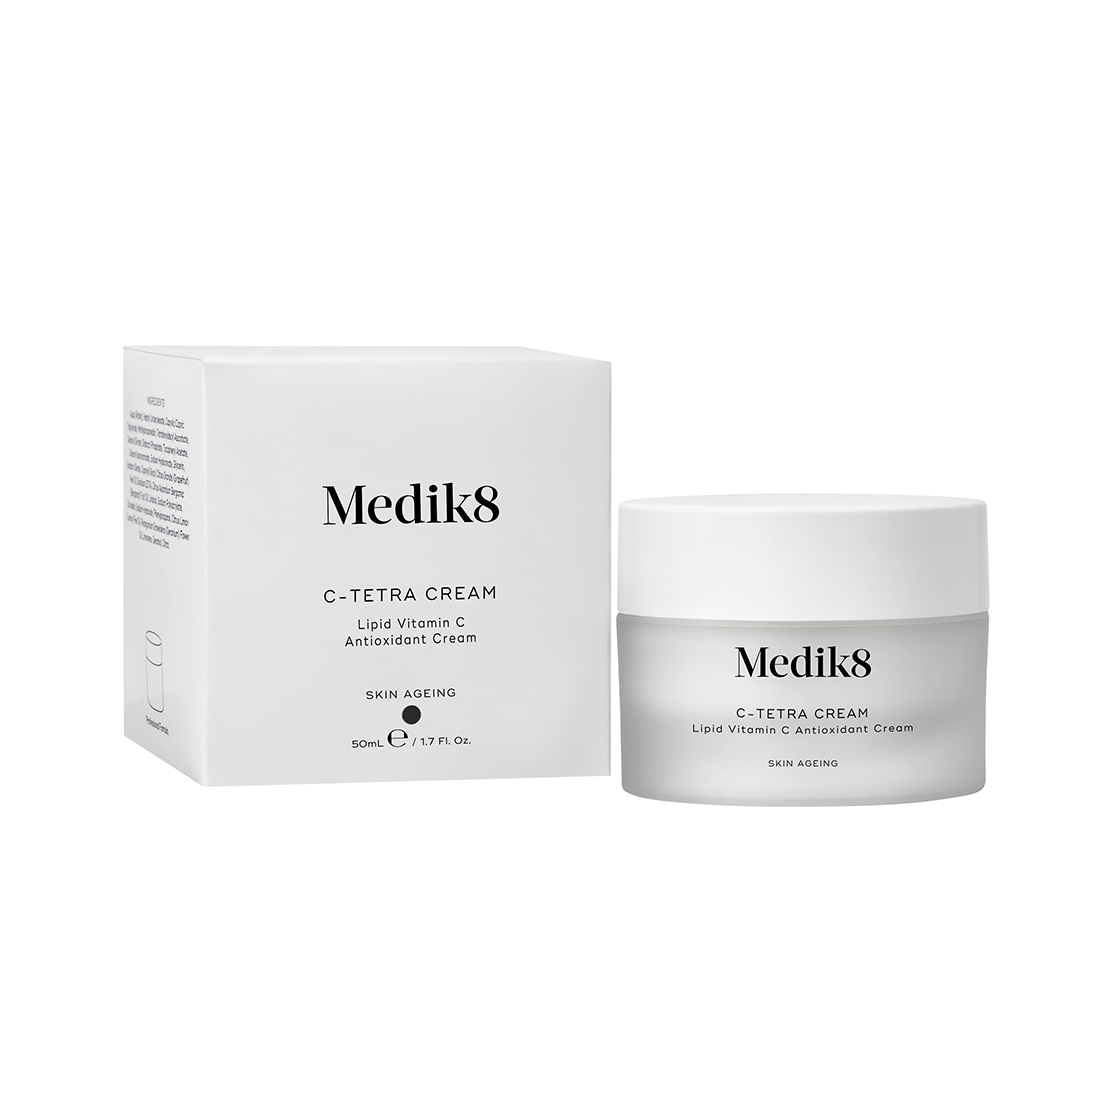 Medik8 C-Tetra Cream, 50ml